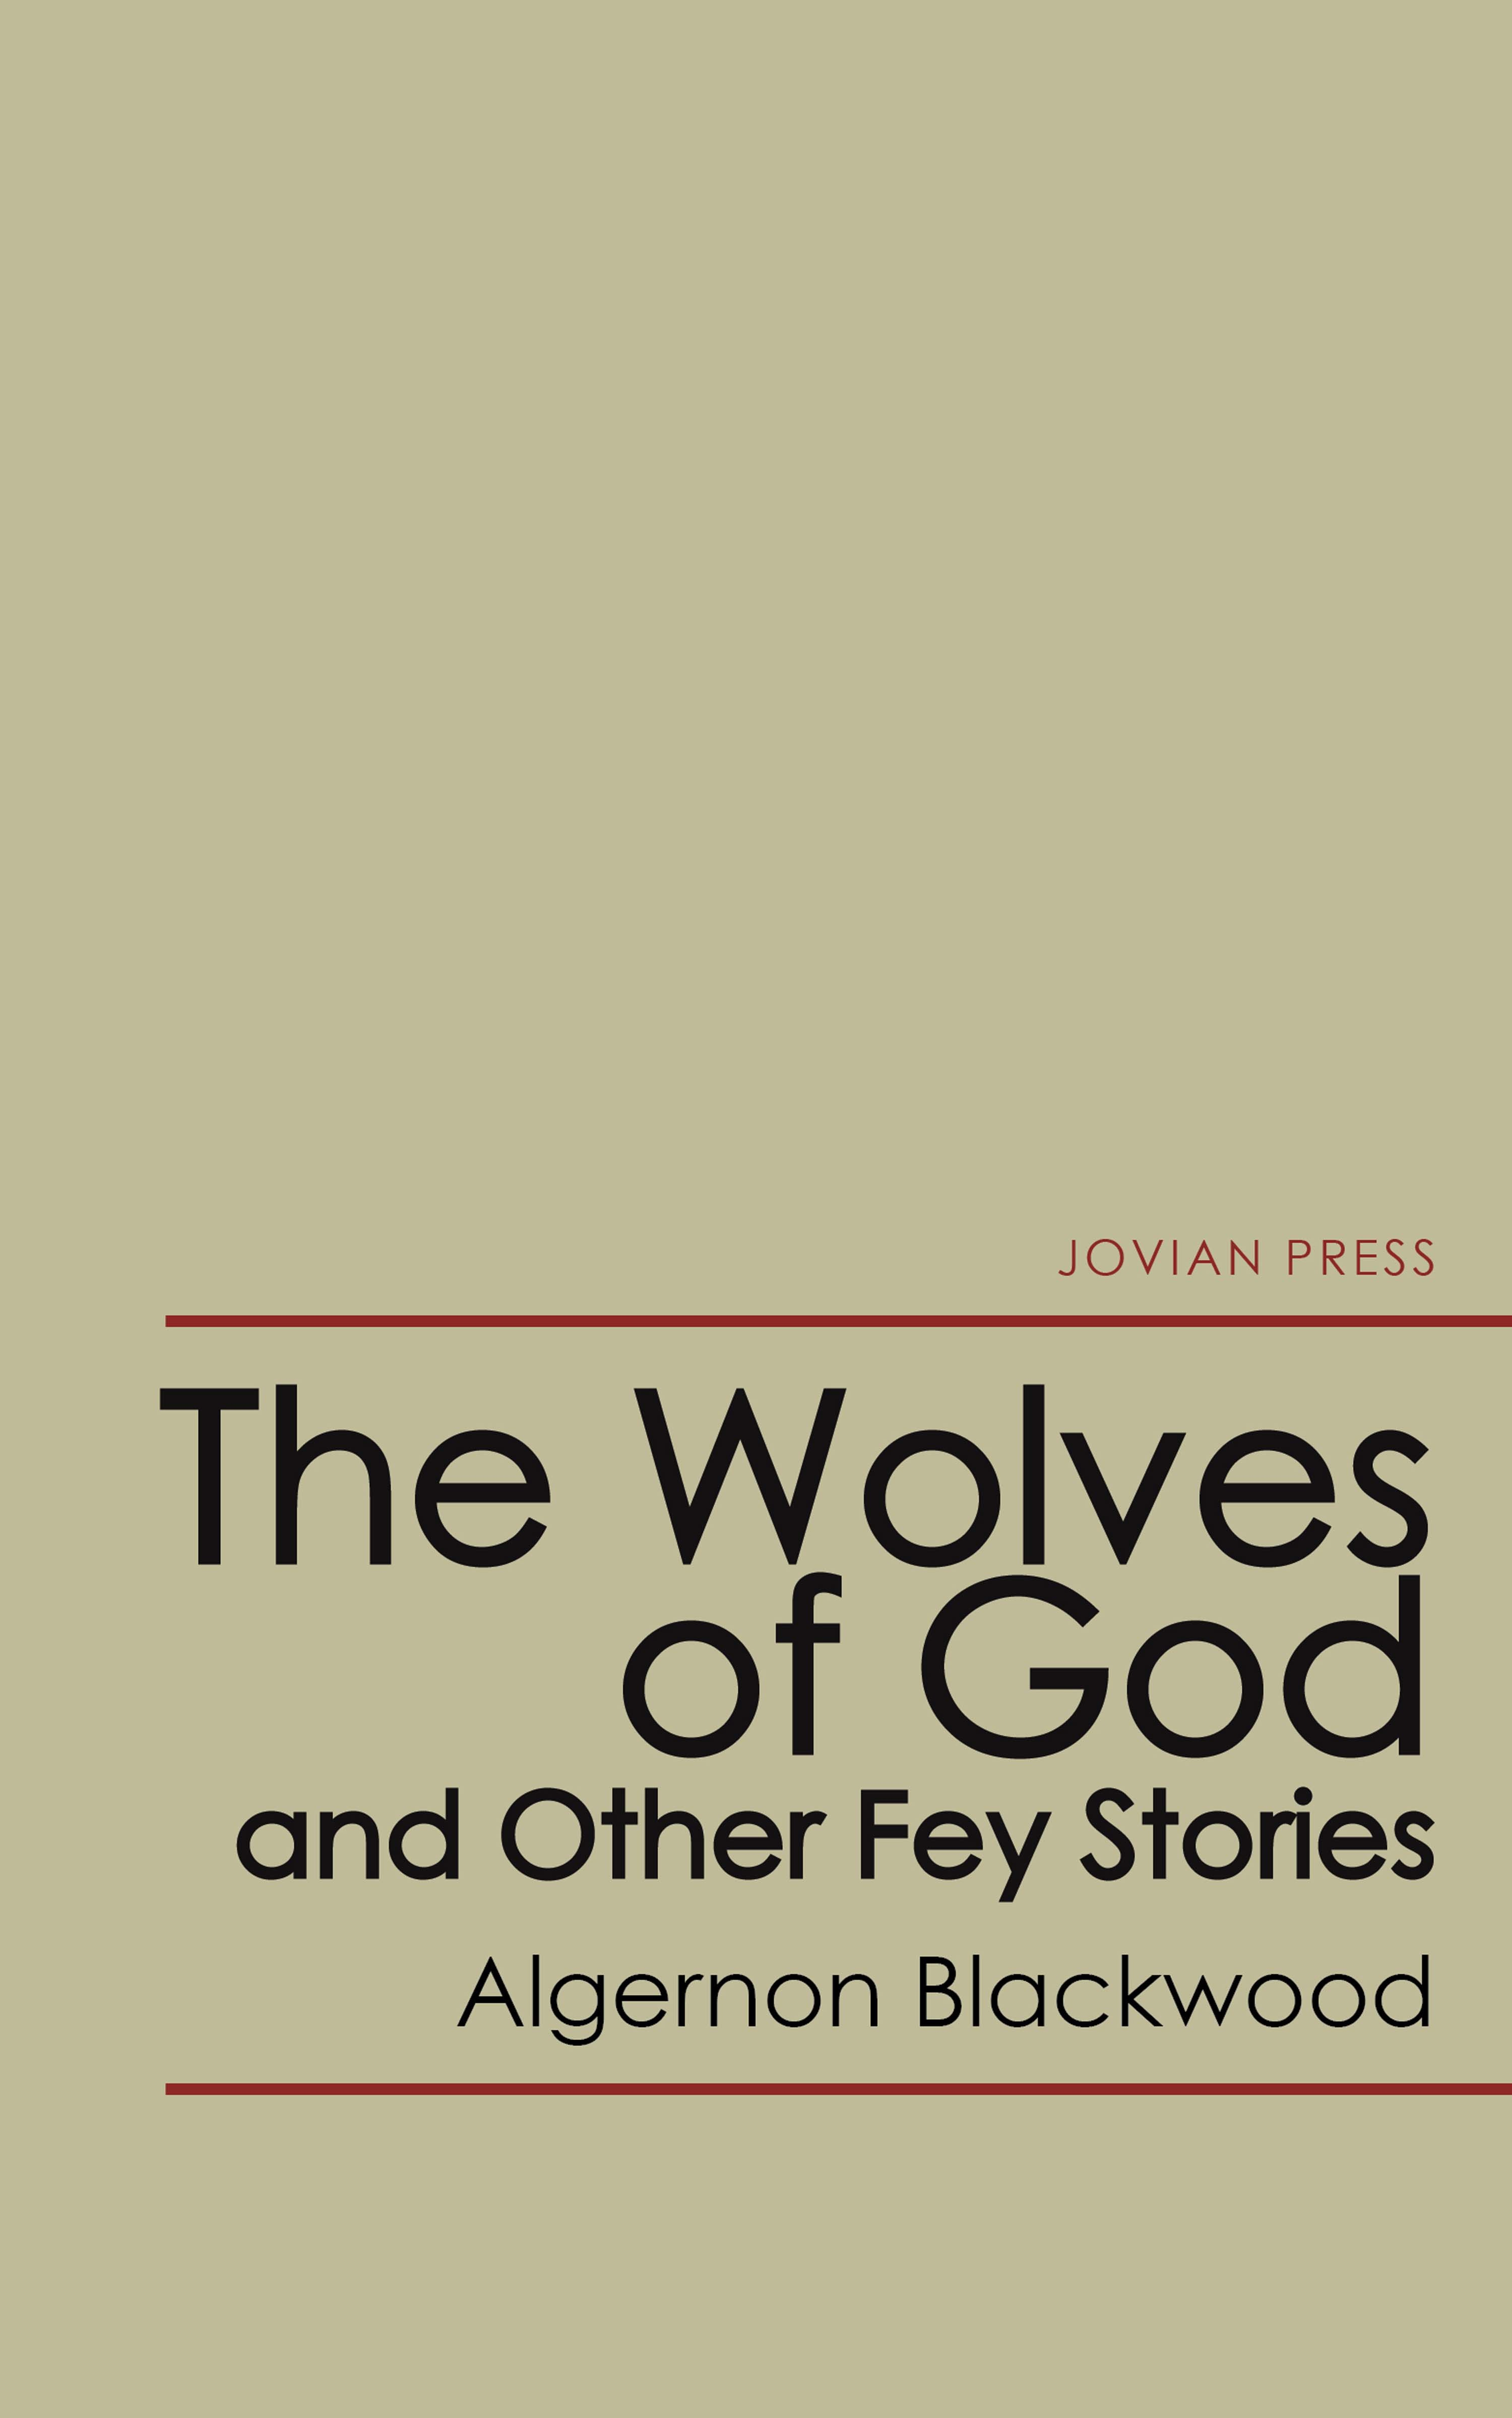 Algernon Blackwood The Wolves of God and Other Fey Stories roger ellsworth when god blocks our path and 30 other bible based meditations